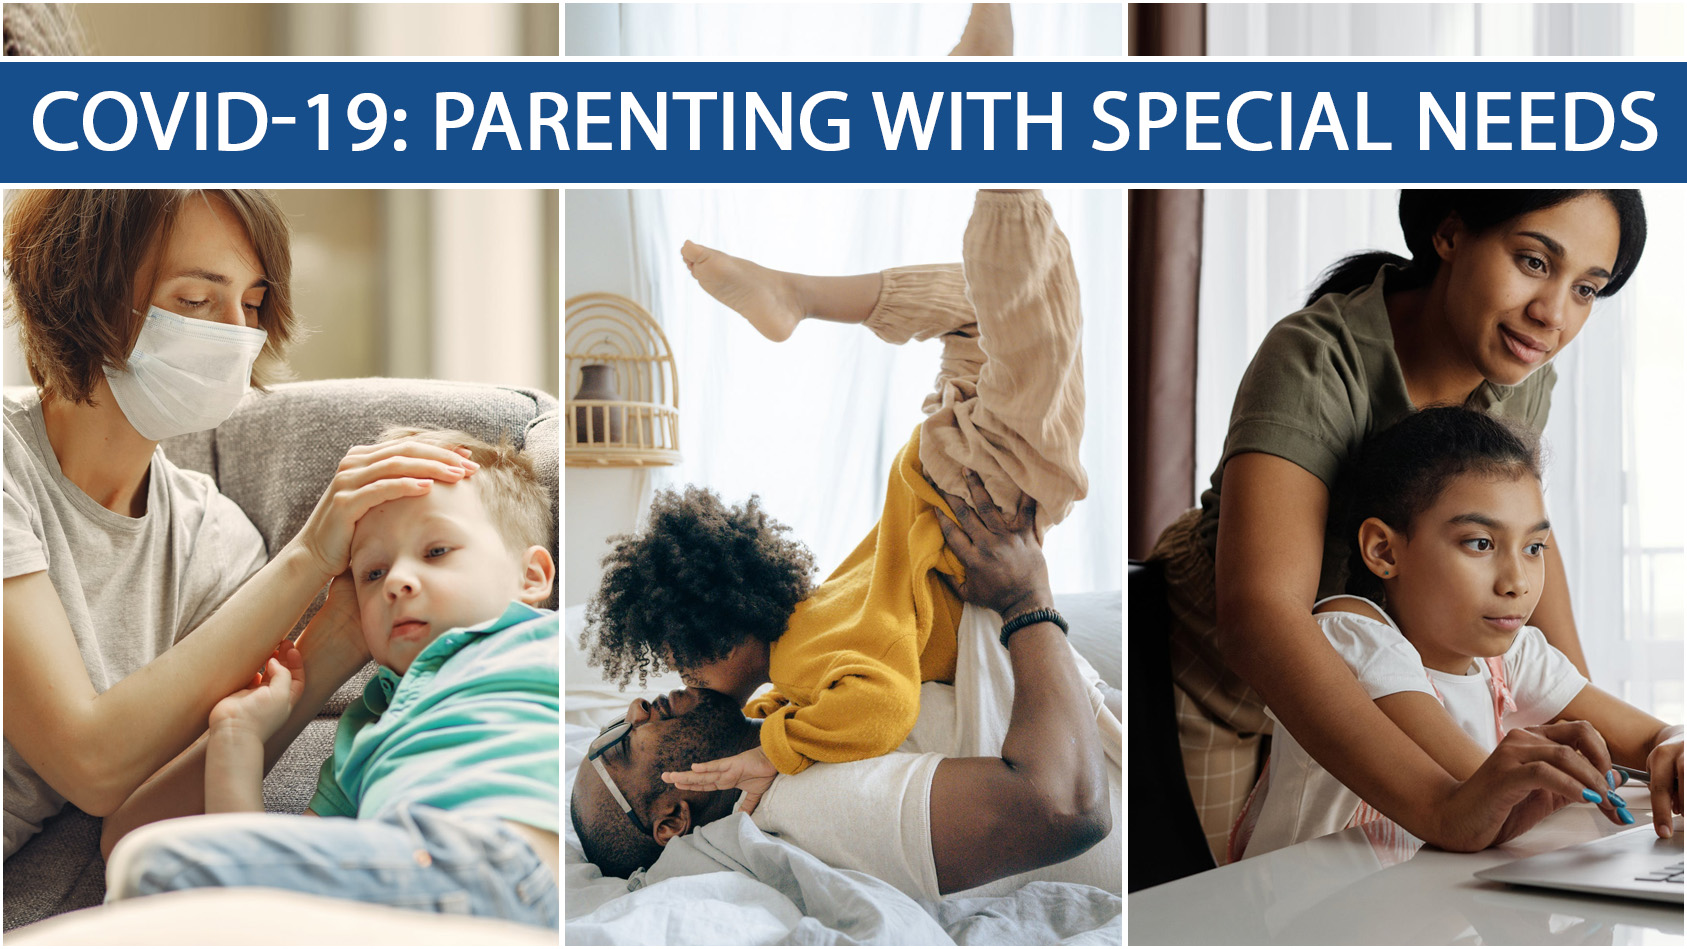 COVID-19: PARENTING WITH SPECIAL NEEDS